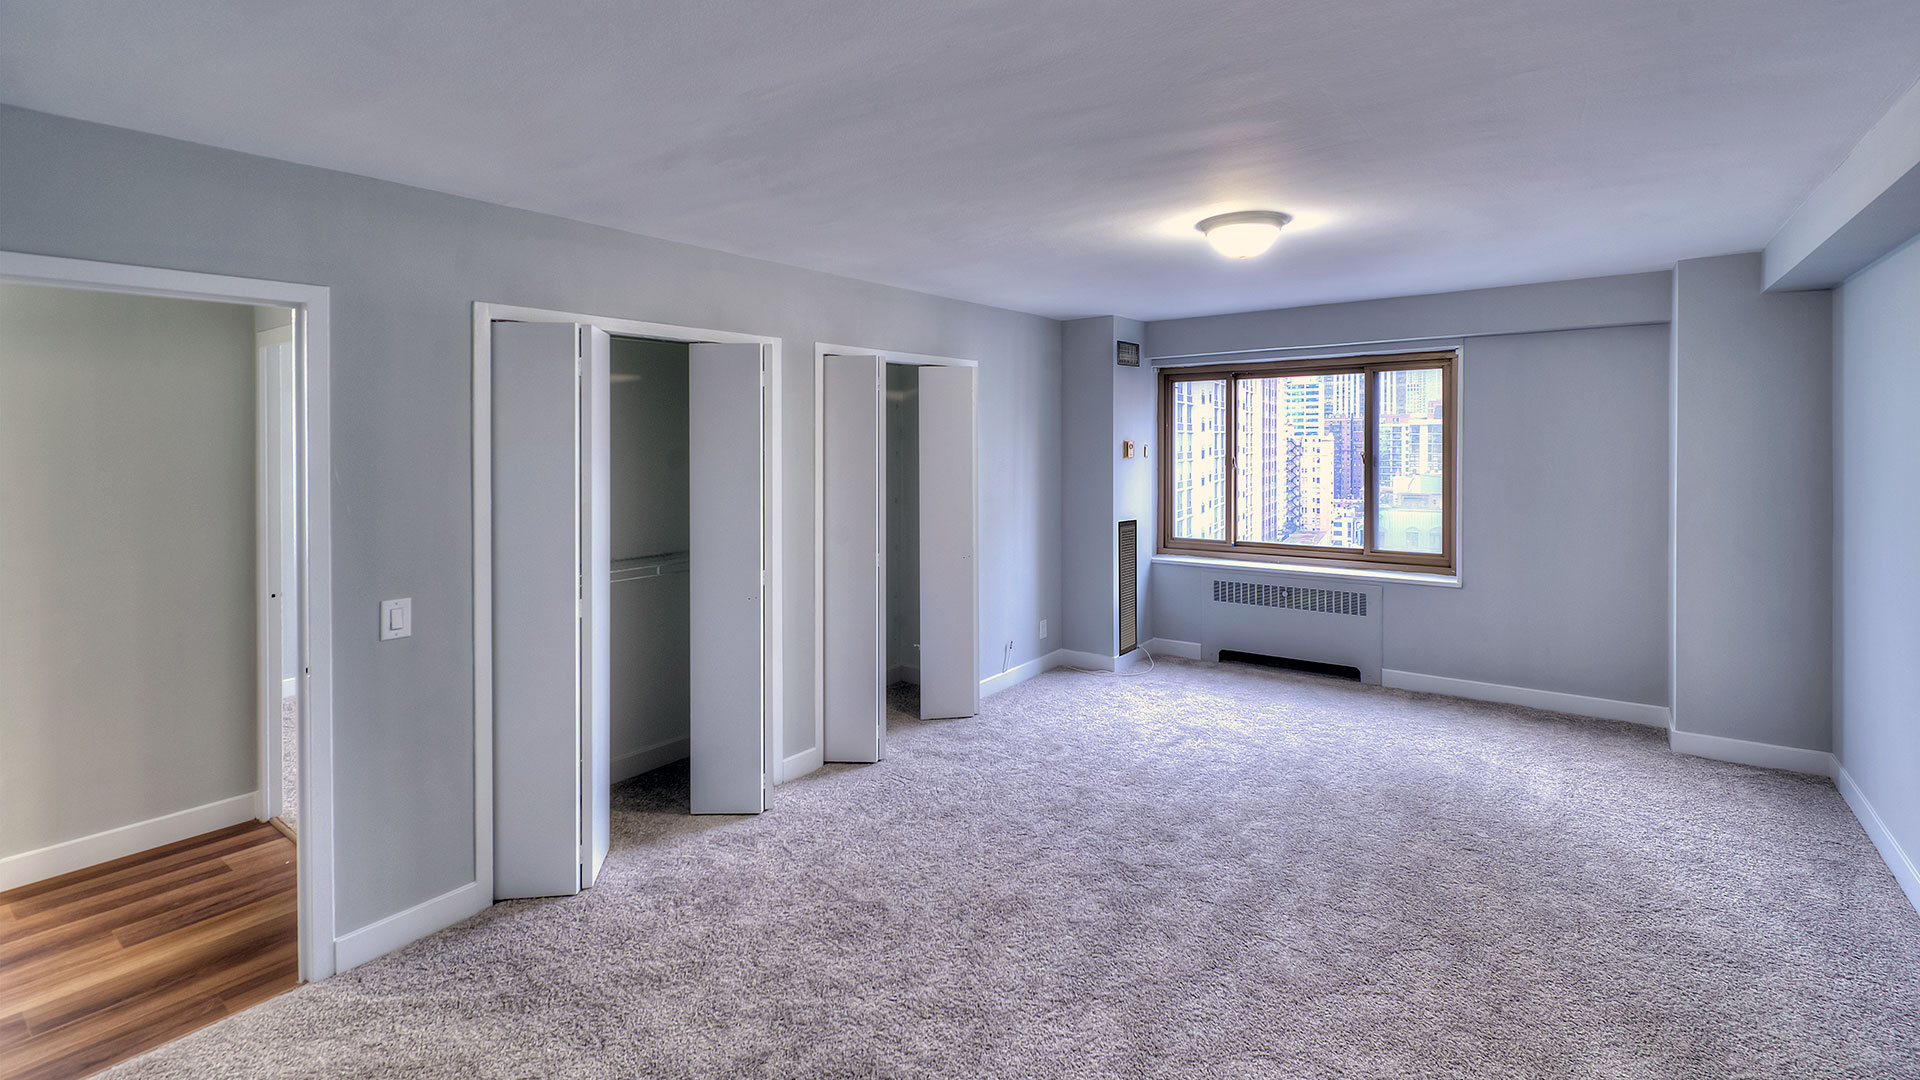 An empty bedroom in a 1350-1360 Lake Shore Drive residence with two large closets on the left wall and a view of Chicago out the window on the far wall.